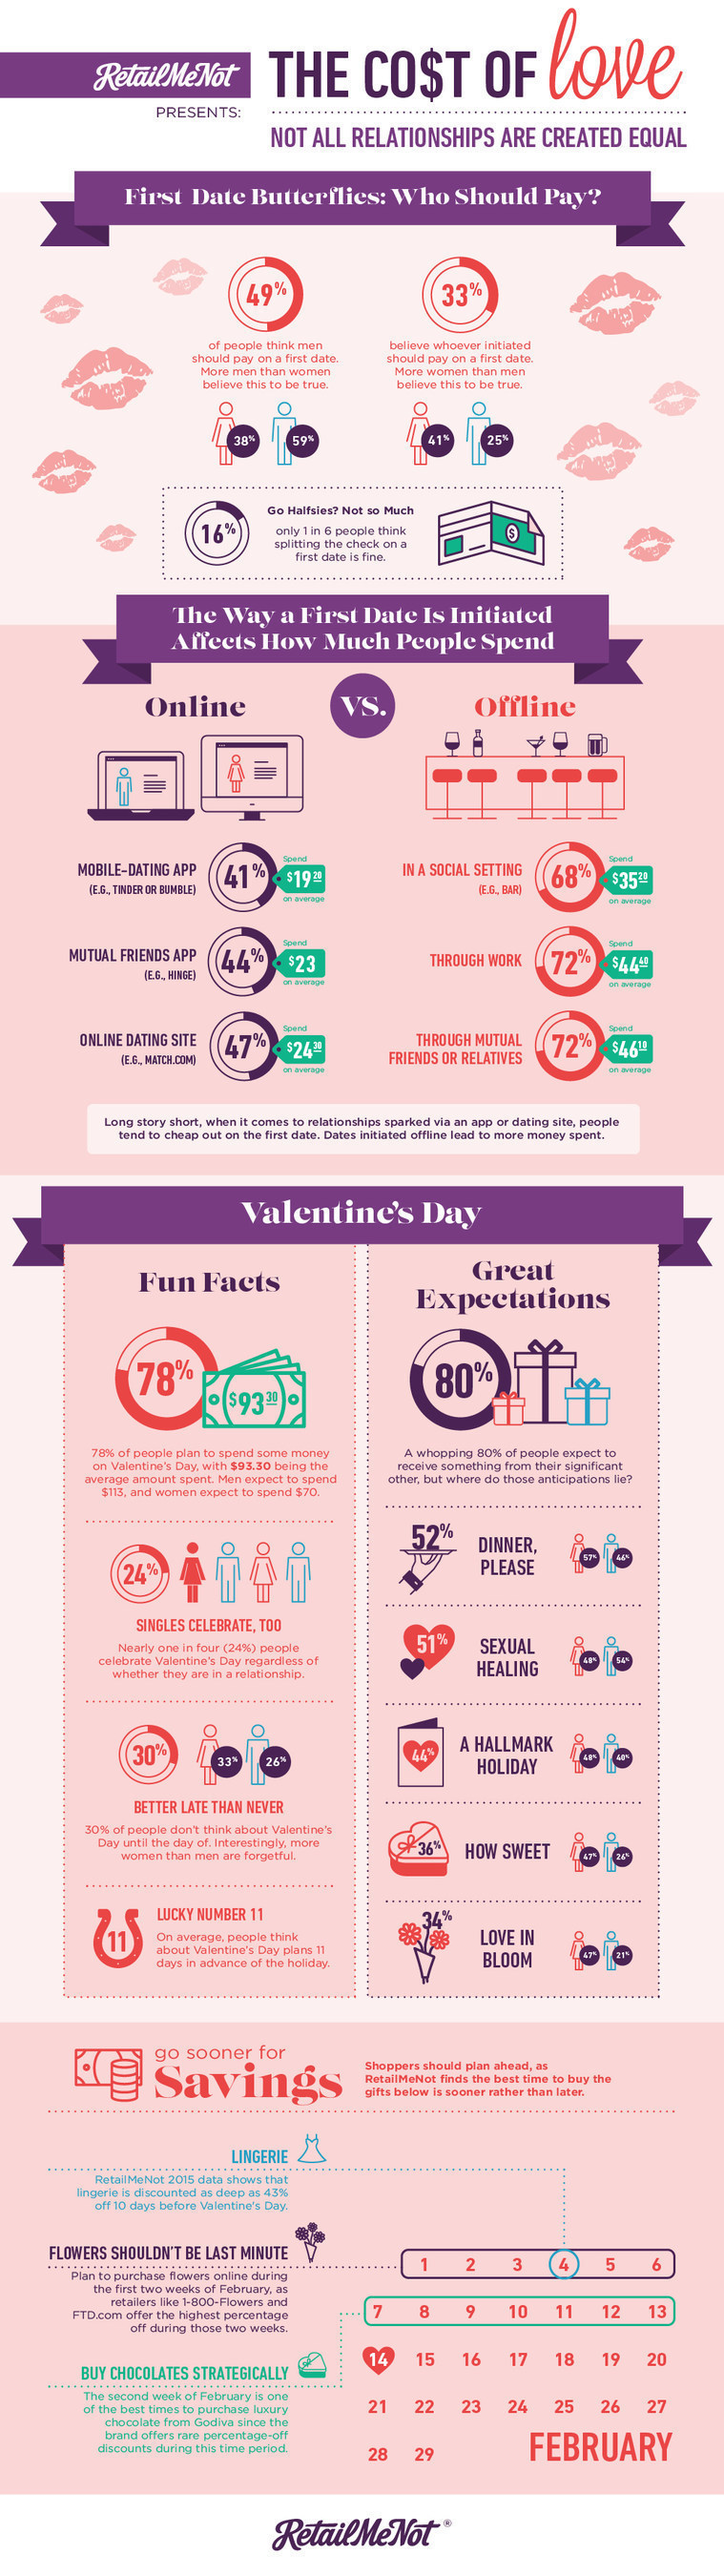 RetailMeNot Survey Finds 30% of Partnered Americans Do Not Make Valentine's Day Plans in Advance of February 14